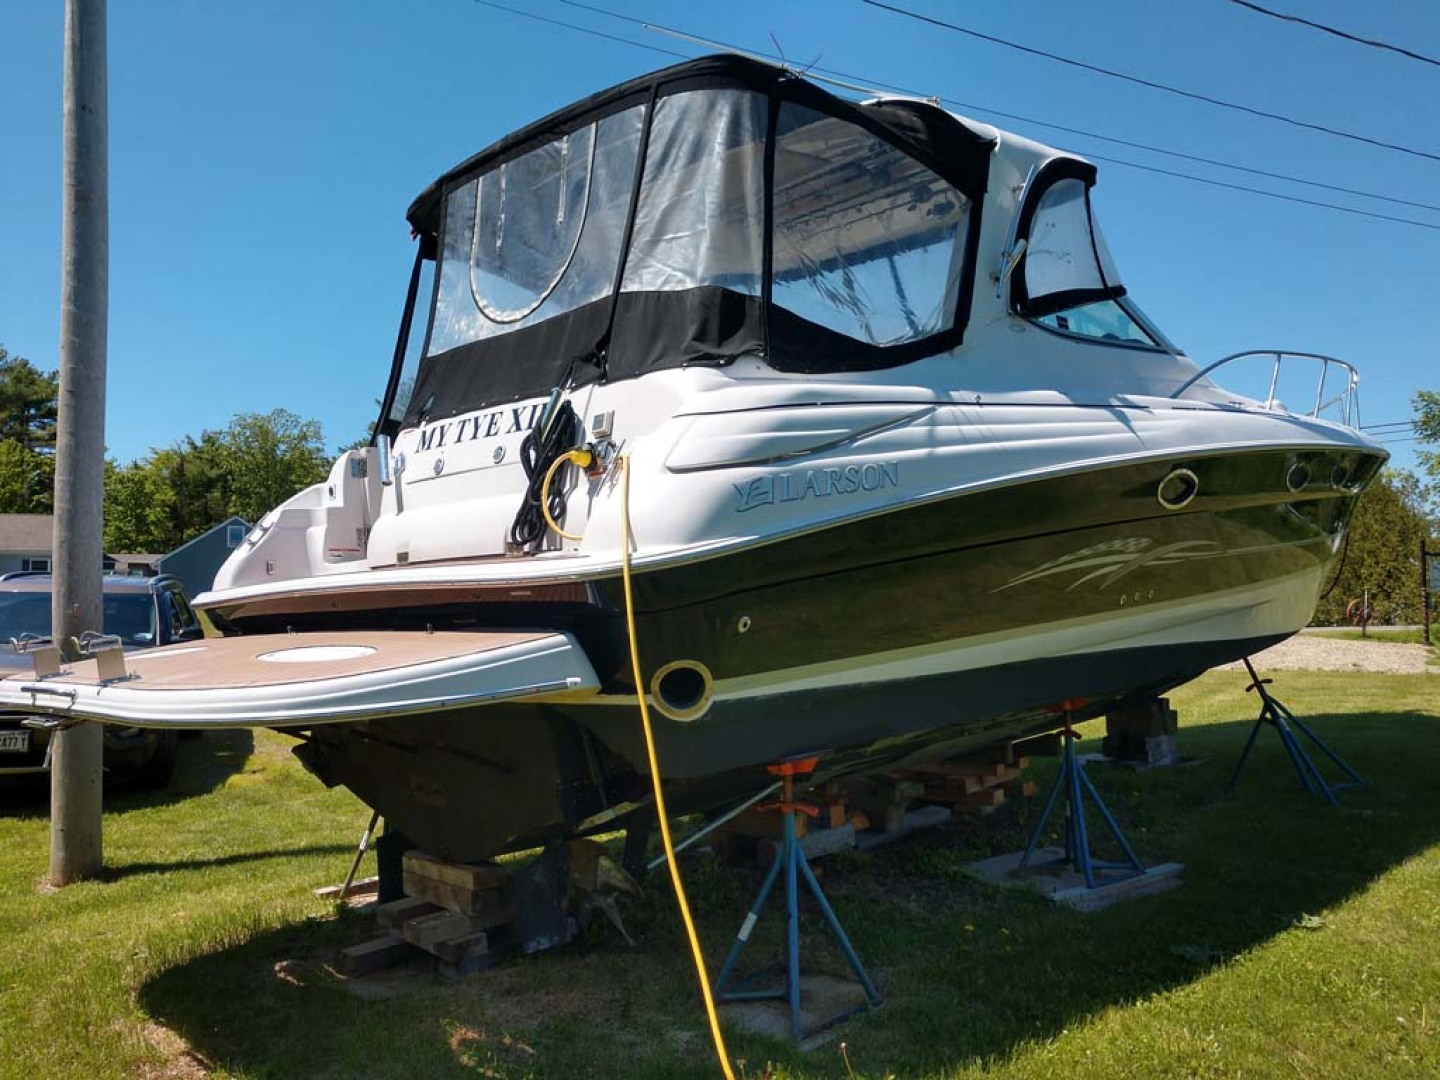 Larson-Cabrio 370 2007-My Tye XII Wiscasset-Maine-United States-Stbd Aft Qtr Profile-1174457 | Thumbnail